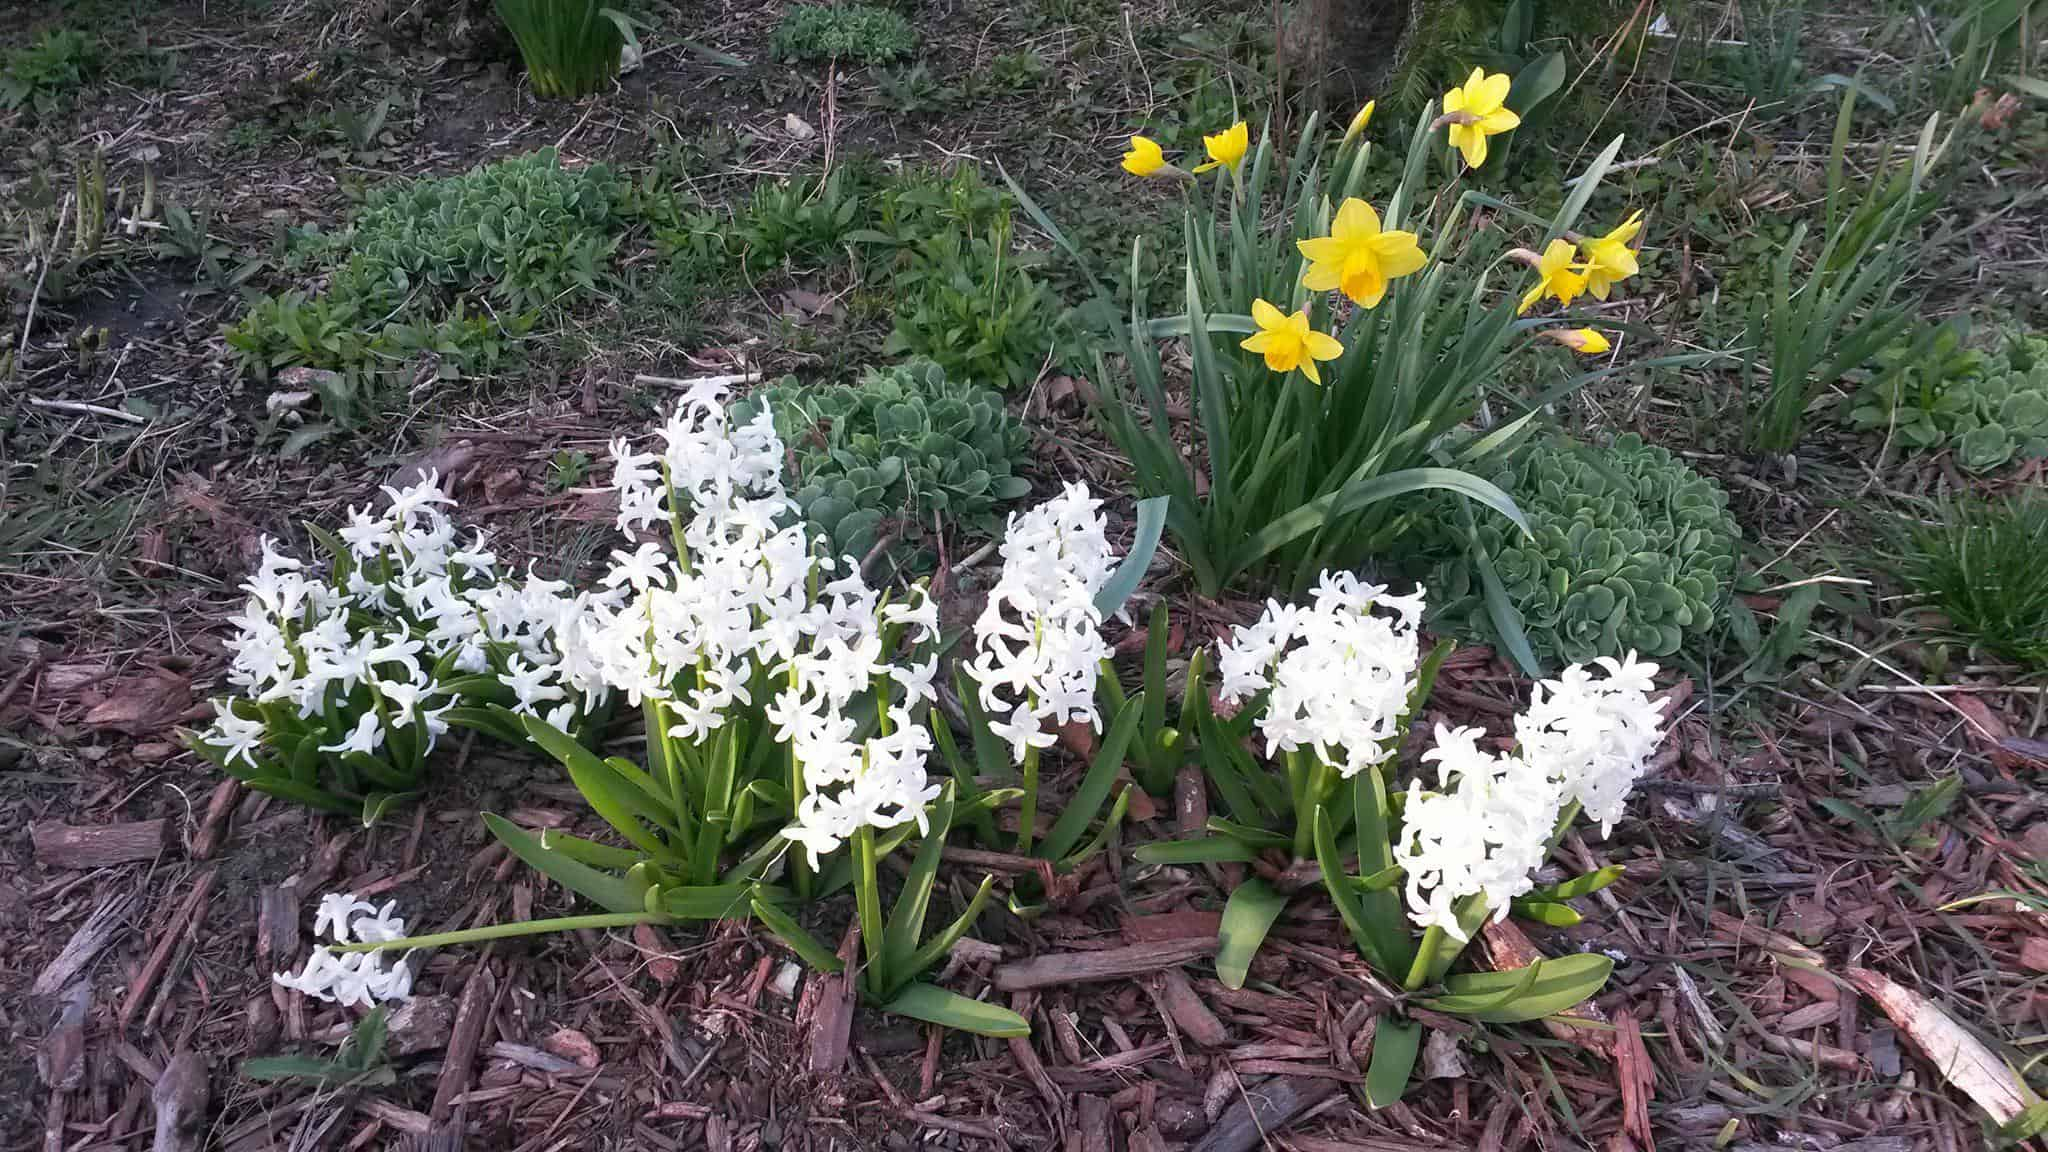 Spring flowers: white hyacinth and daffodils